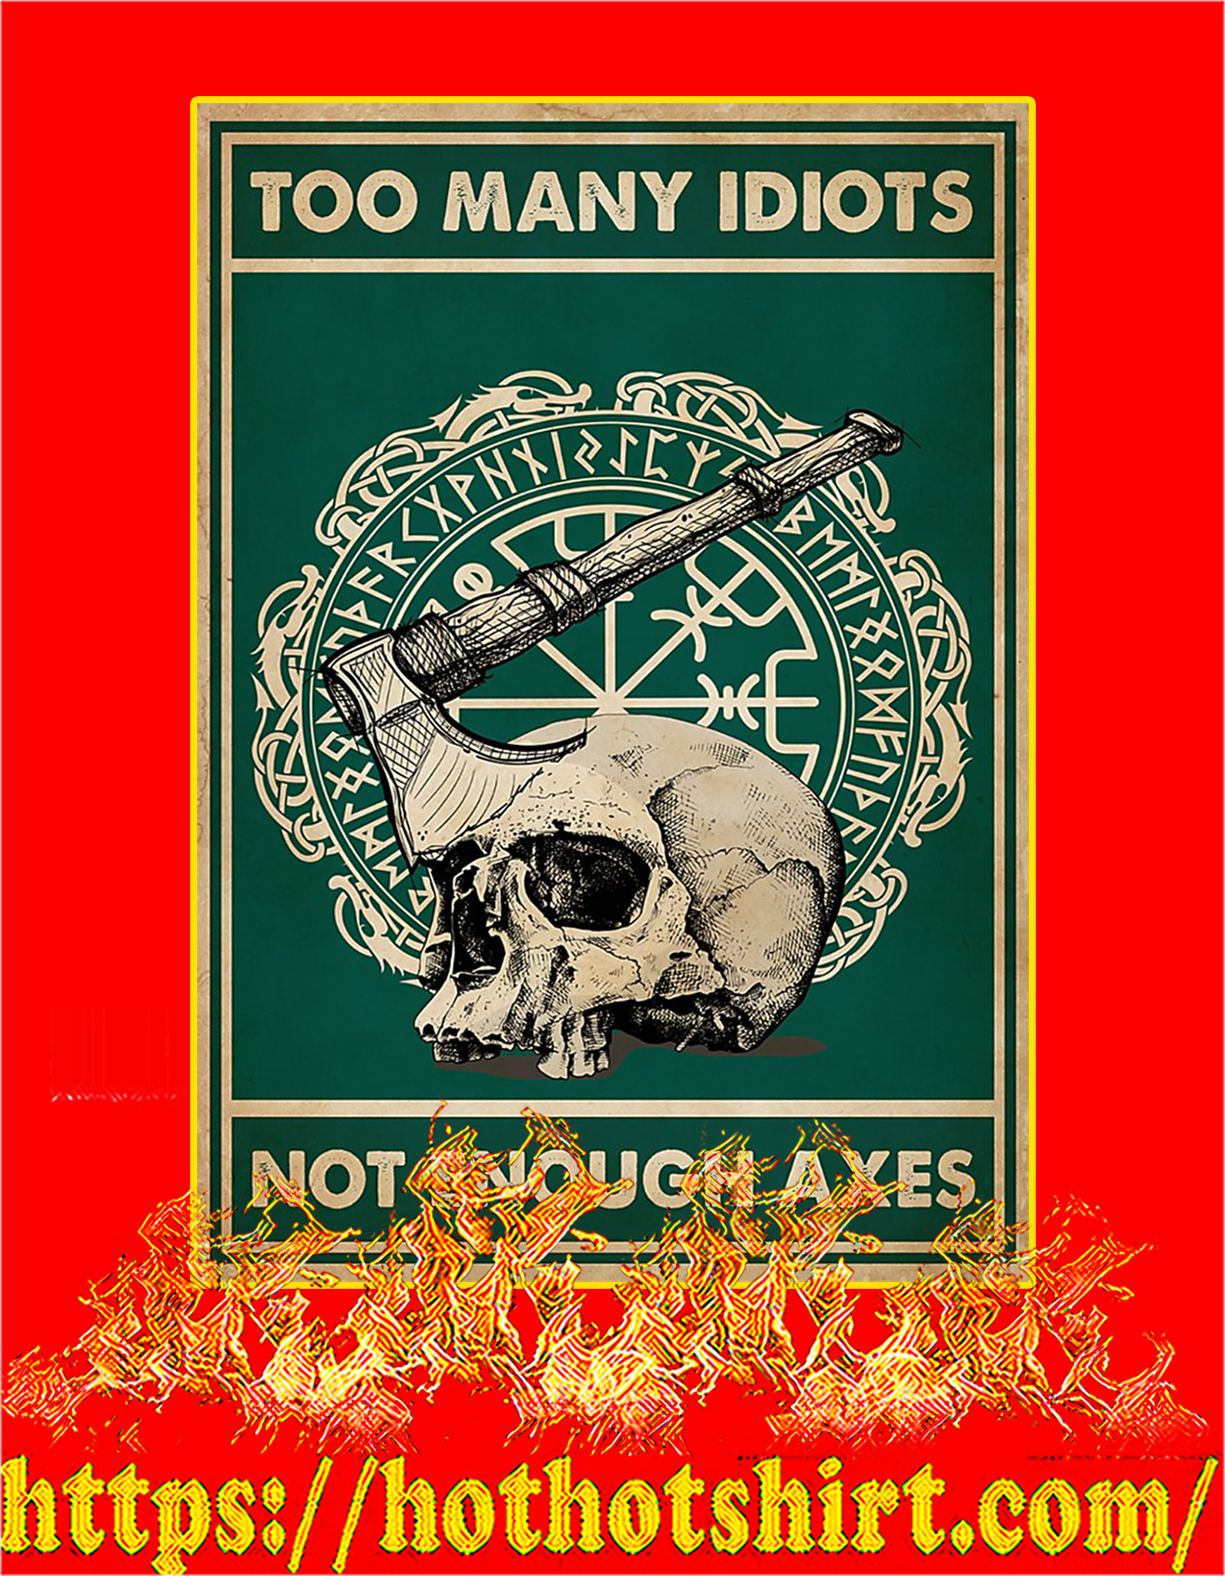 Too many idiots not enough axes poster - A4